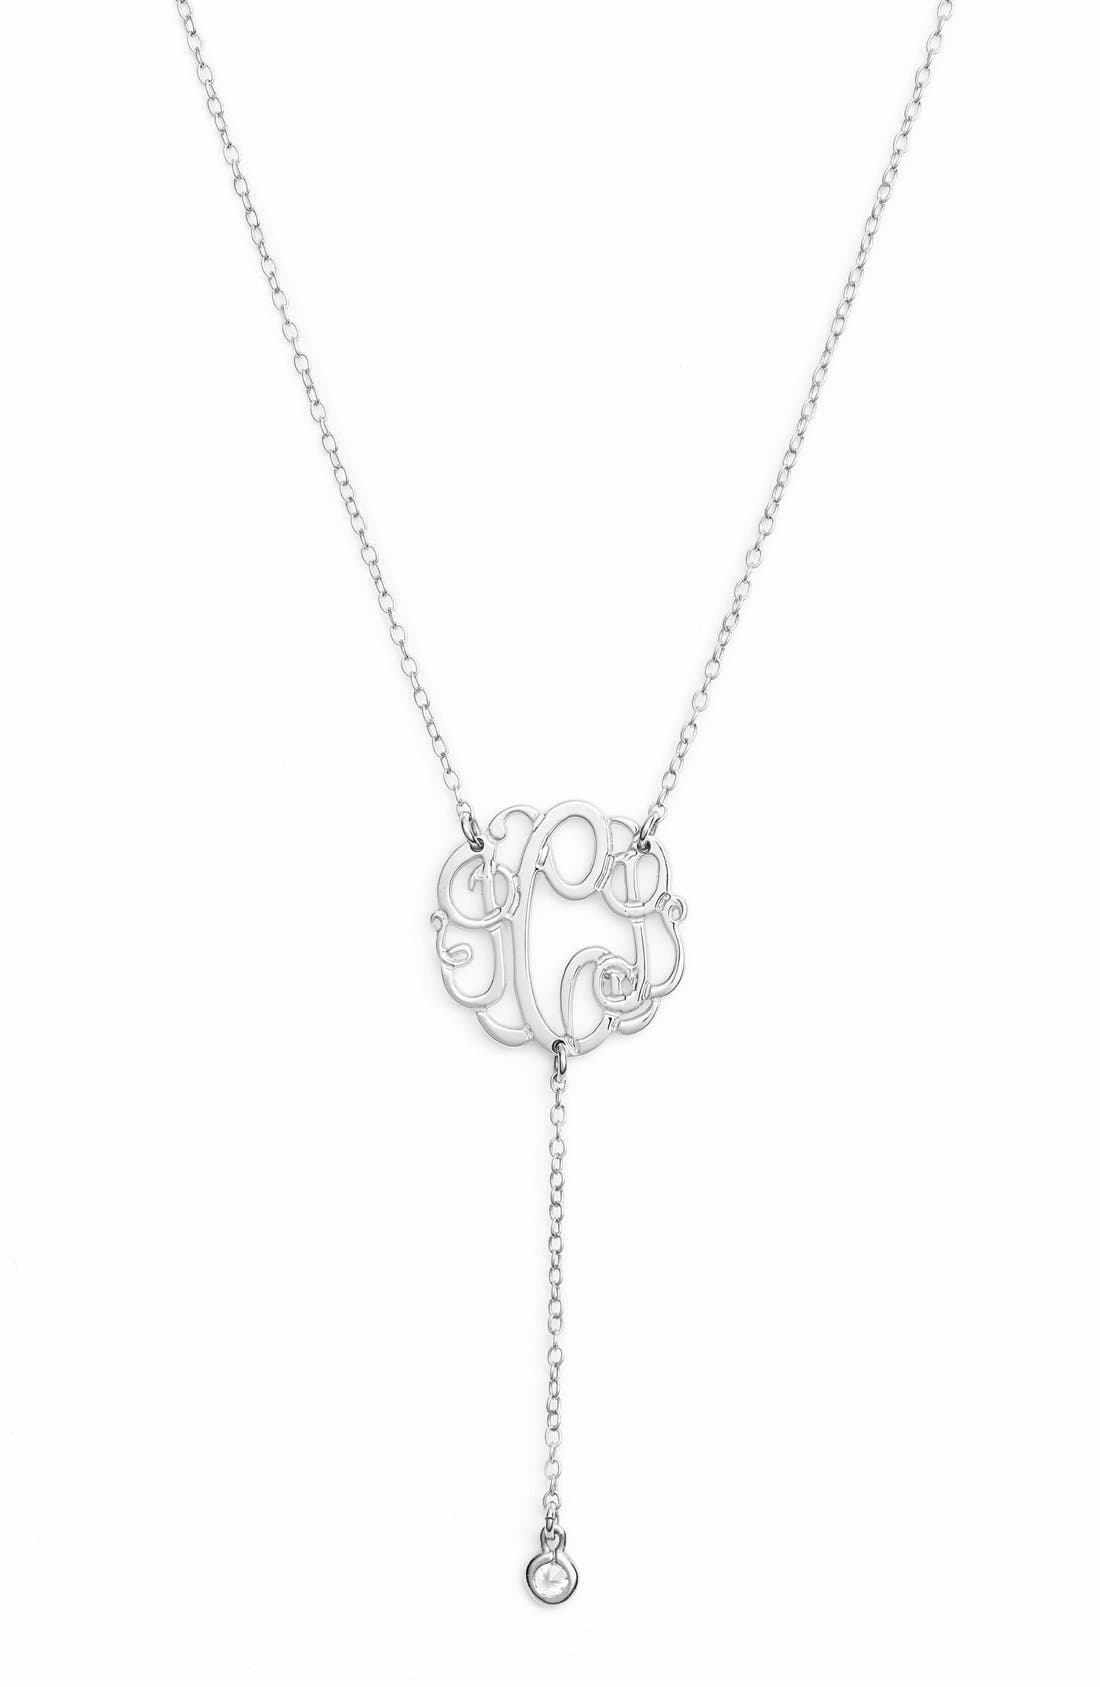 Main Image - Argento Vivo Personalized Three Initial Y-Necklace